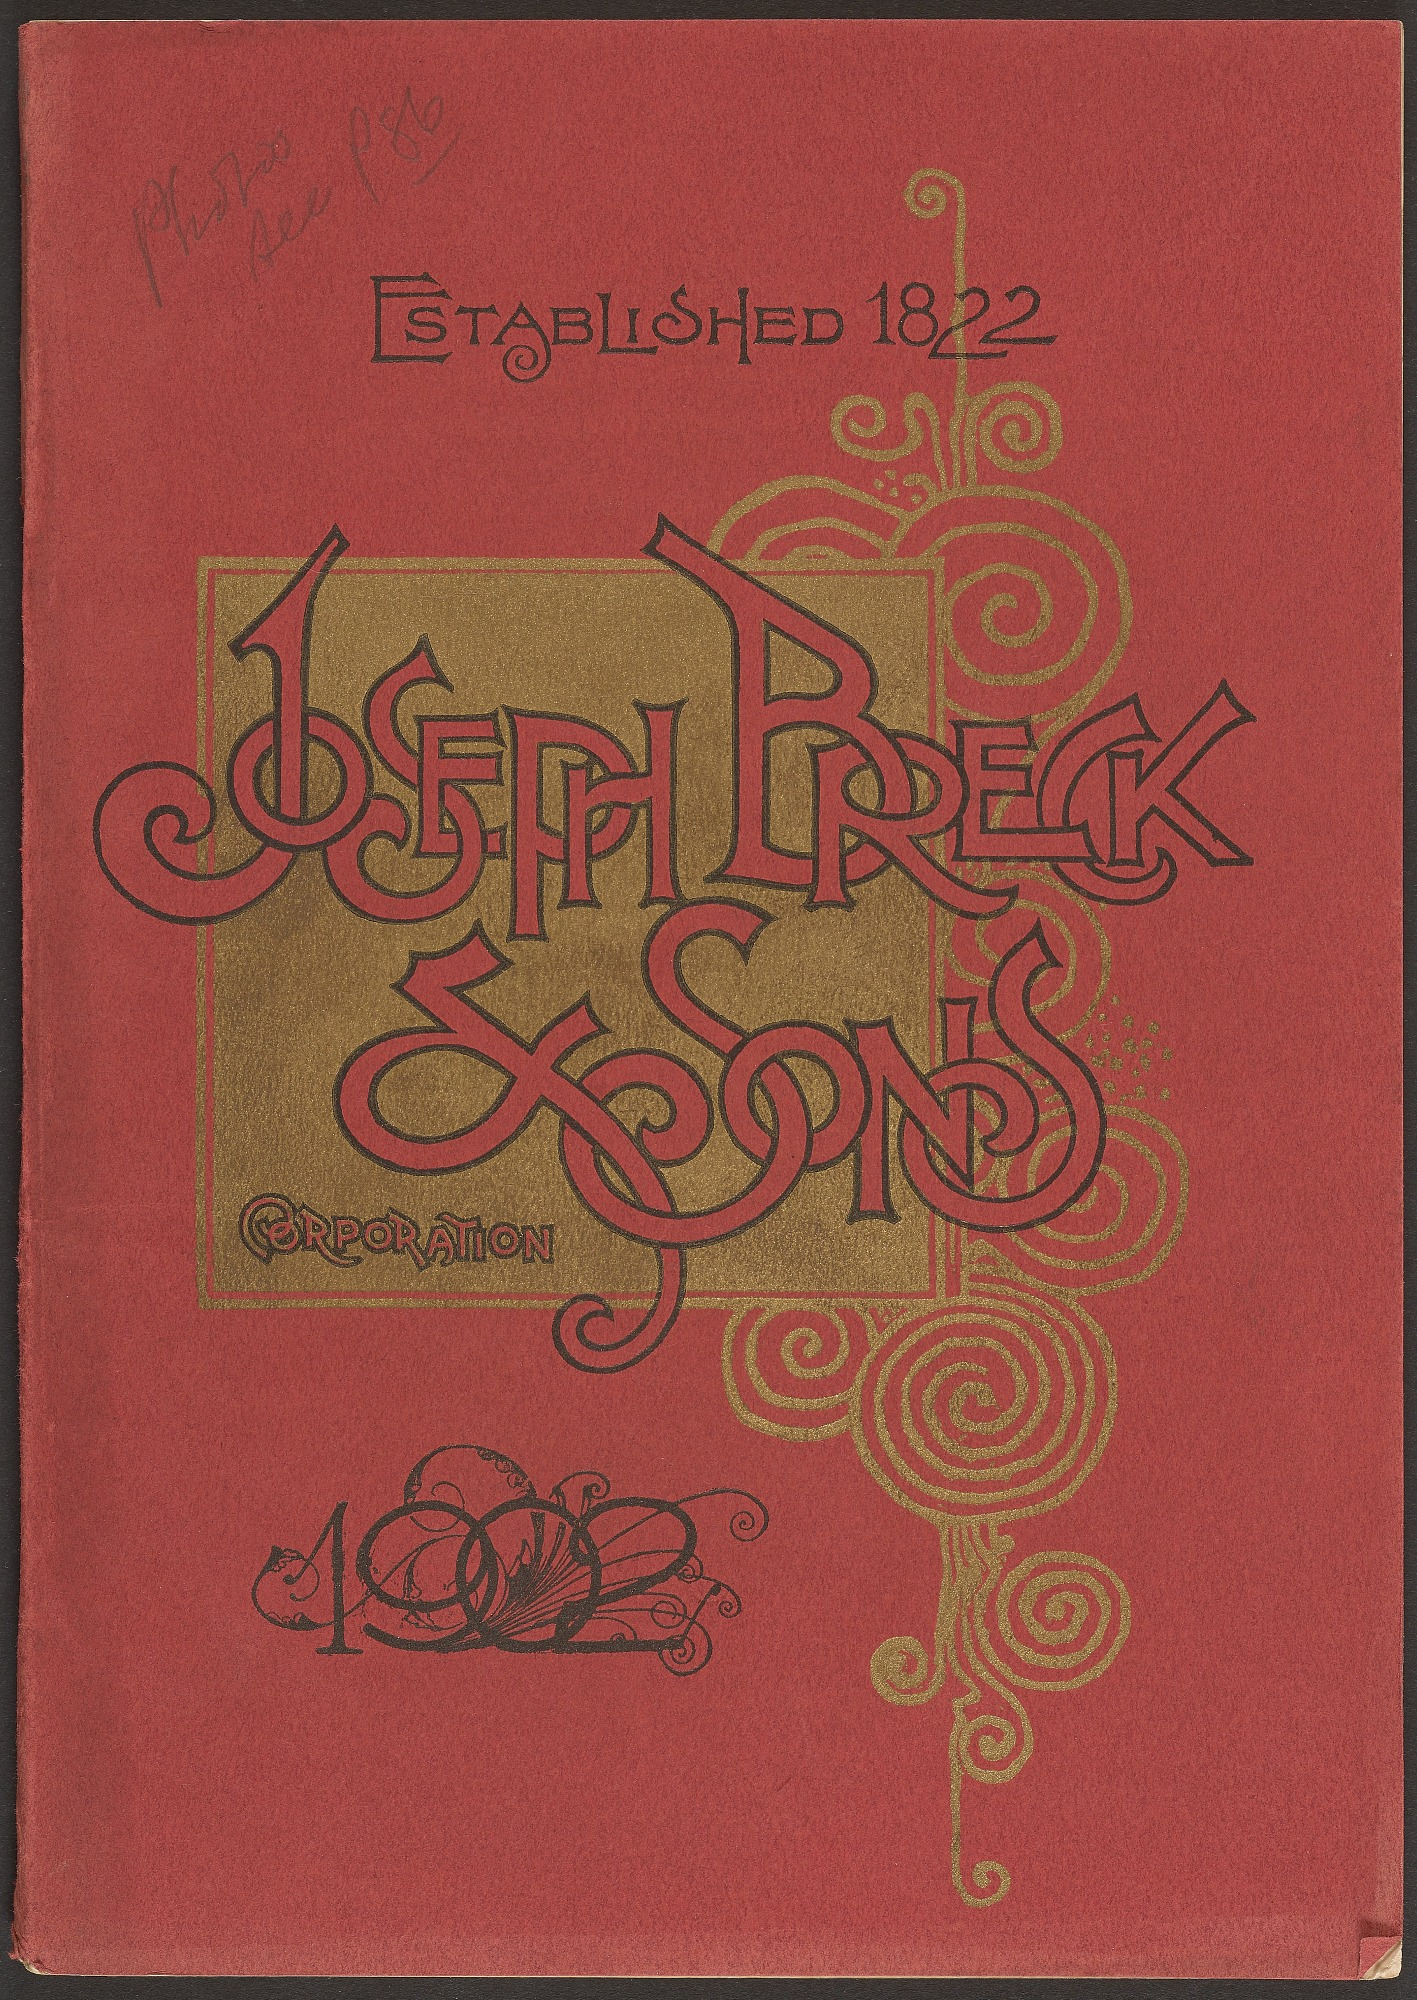 Joseph Breck & Sons Corporation, Seed catalog, 1902